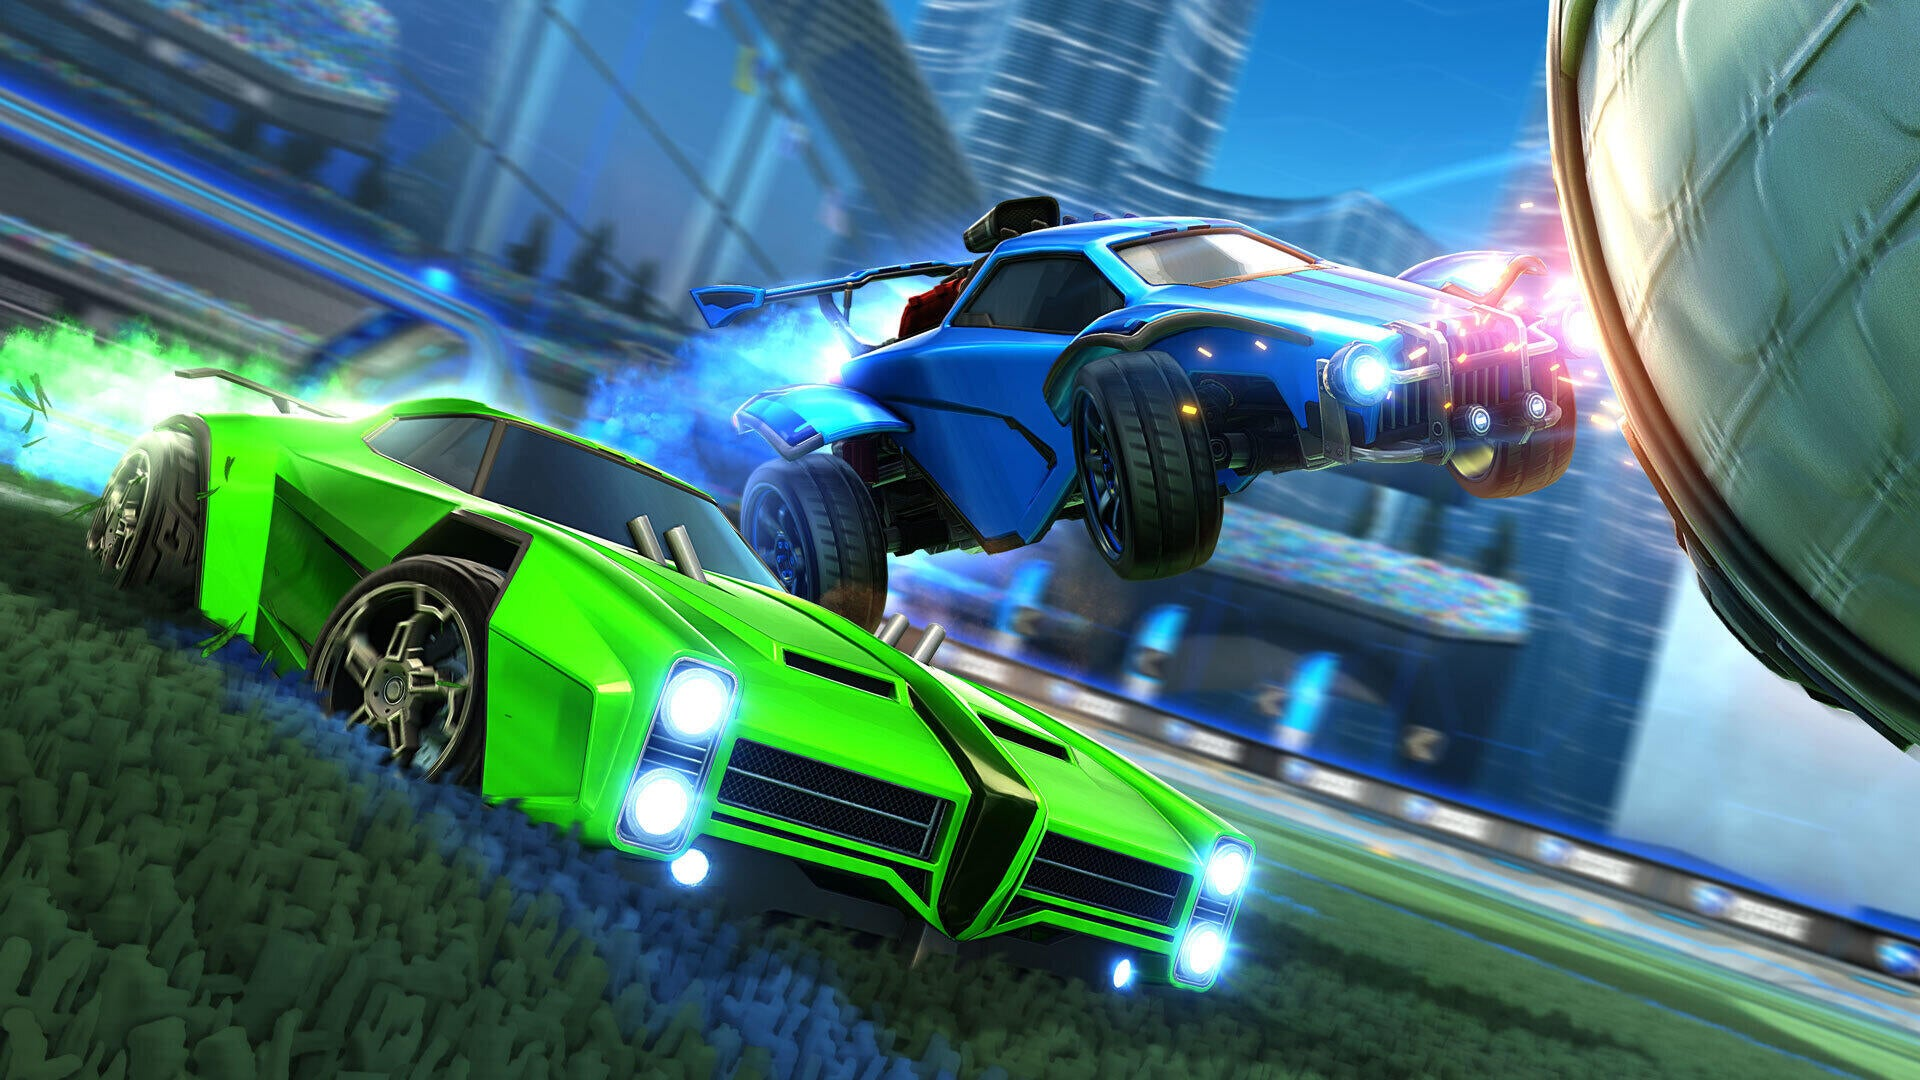 Play Rocket League on Xbox Series X, Series S, and PlayStation 5 Image